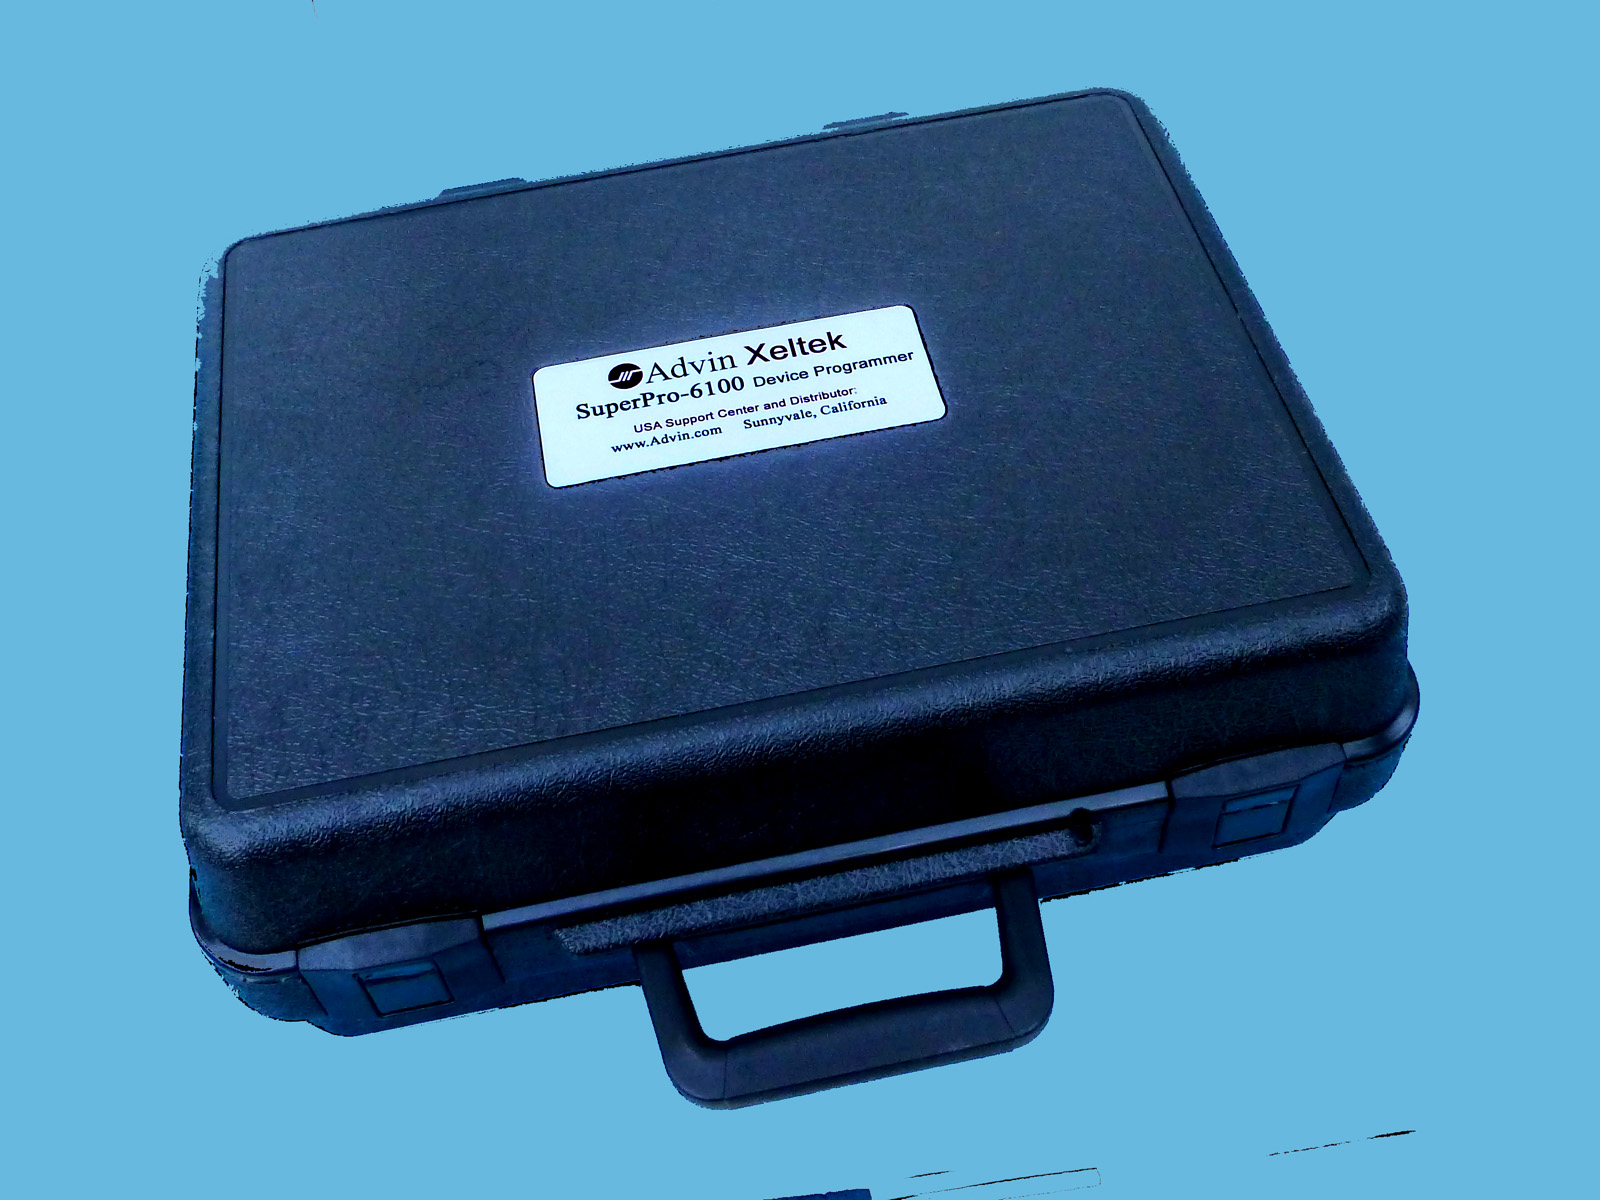 Universal Programmer SuperPro-6100 carry case